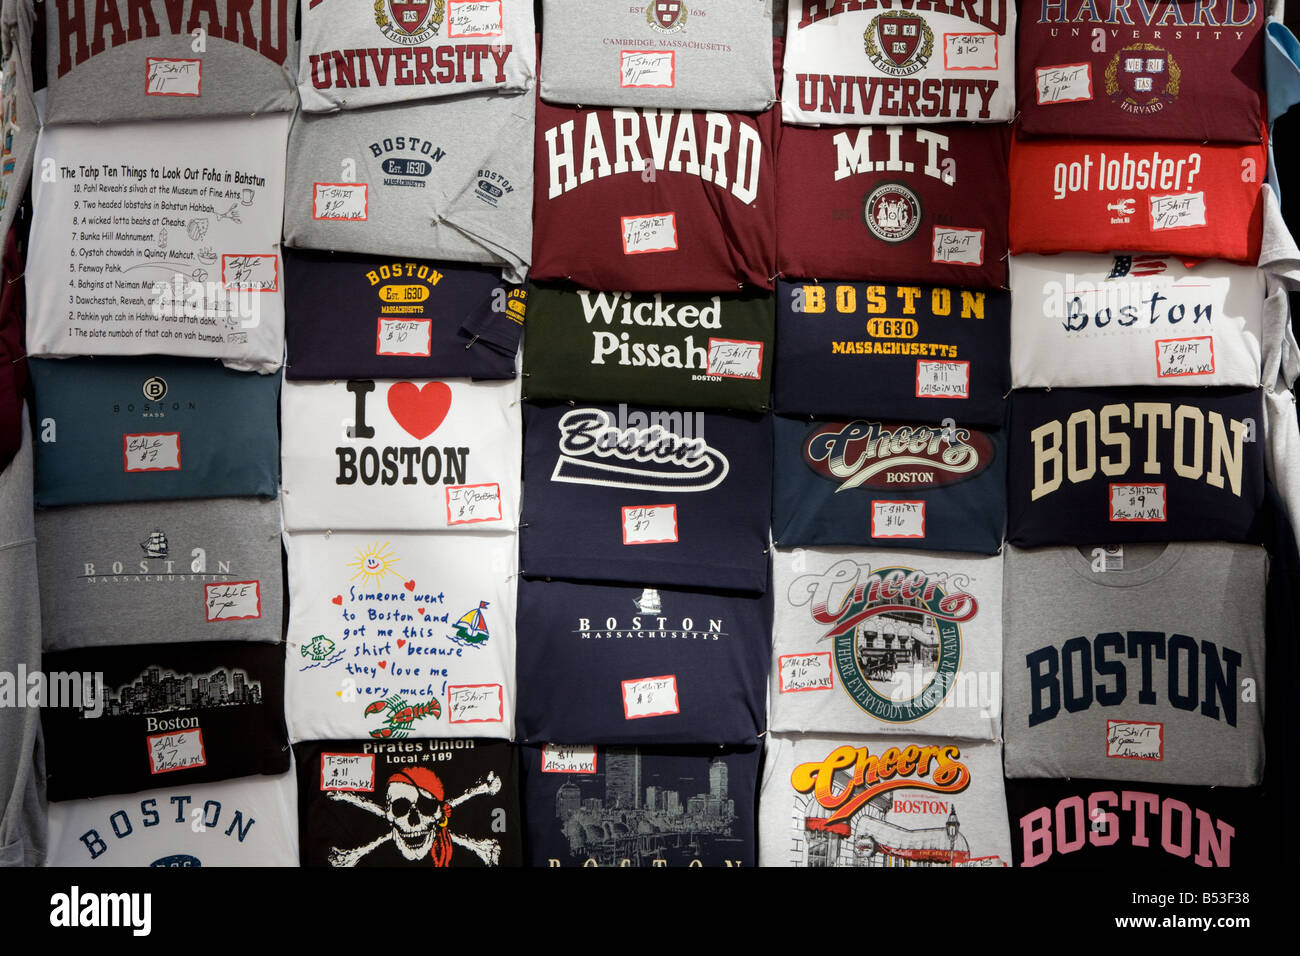 Souvenir tees teeshirts Boston Massachusetts - Stock Image